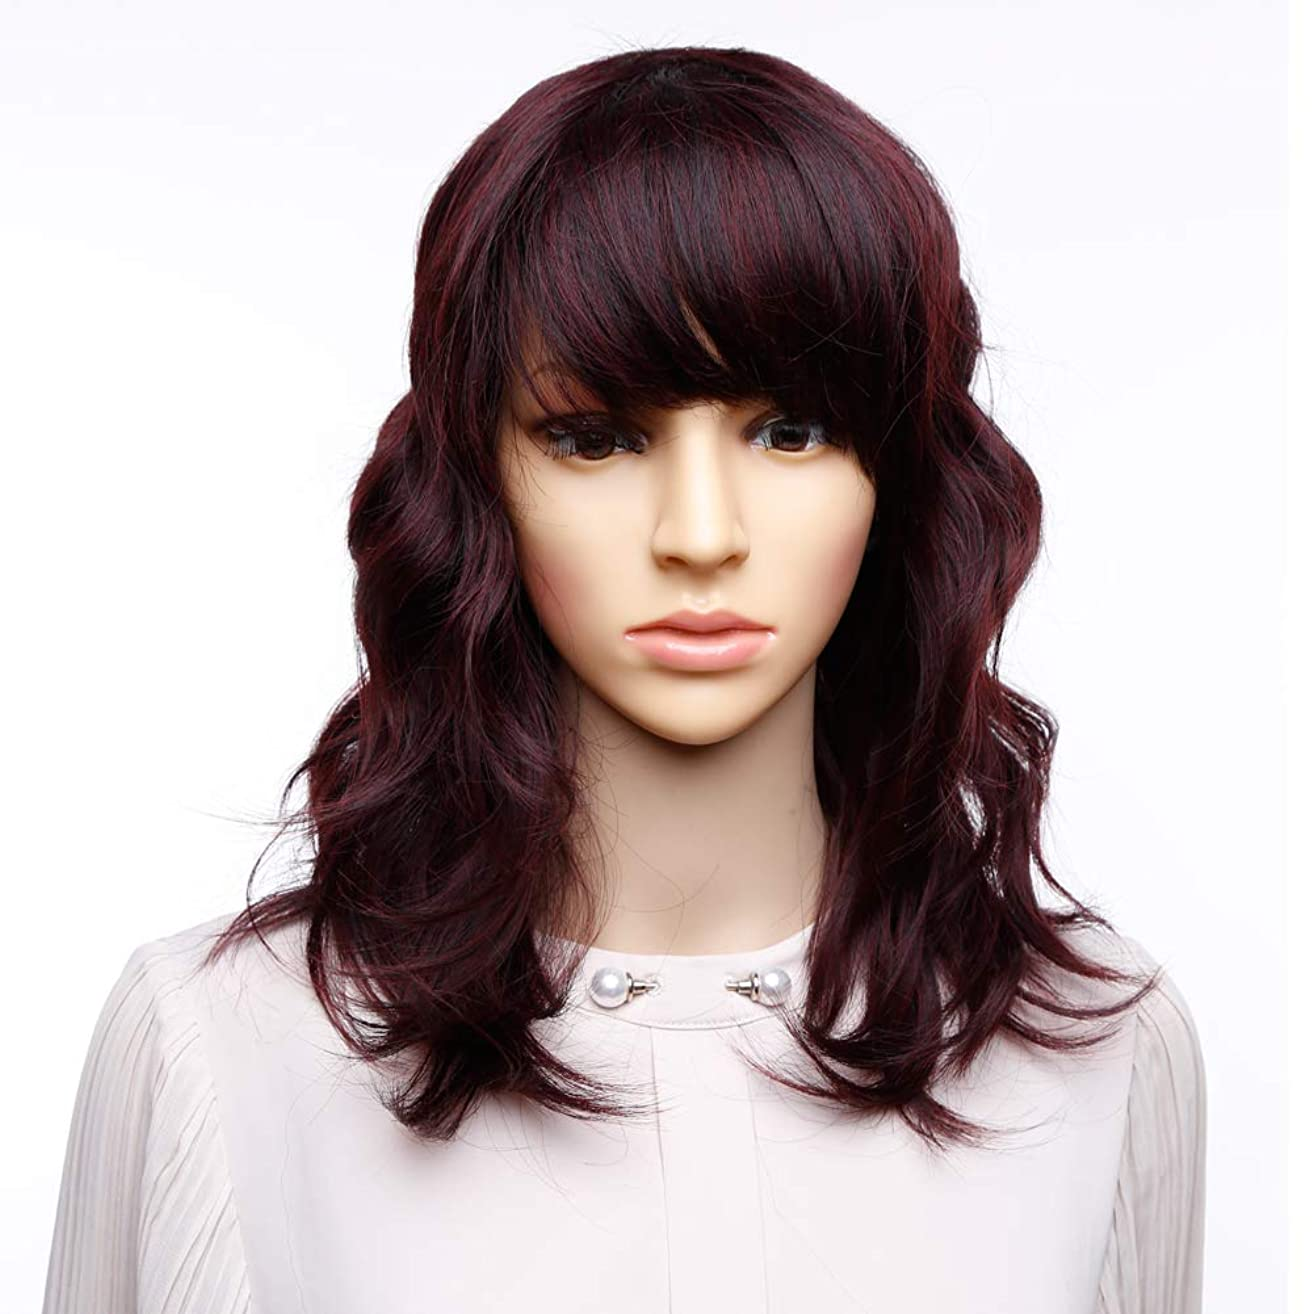 Bob Curly Wig Synthetic Short Red Wig with Bangs Brown Wavy Natural Looking Shoulder Length with layers Fringe Daily Use Fiber Hair for Women (99J)